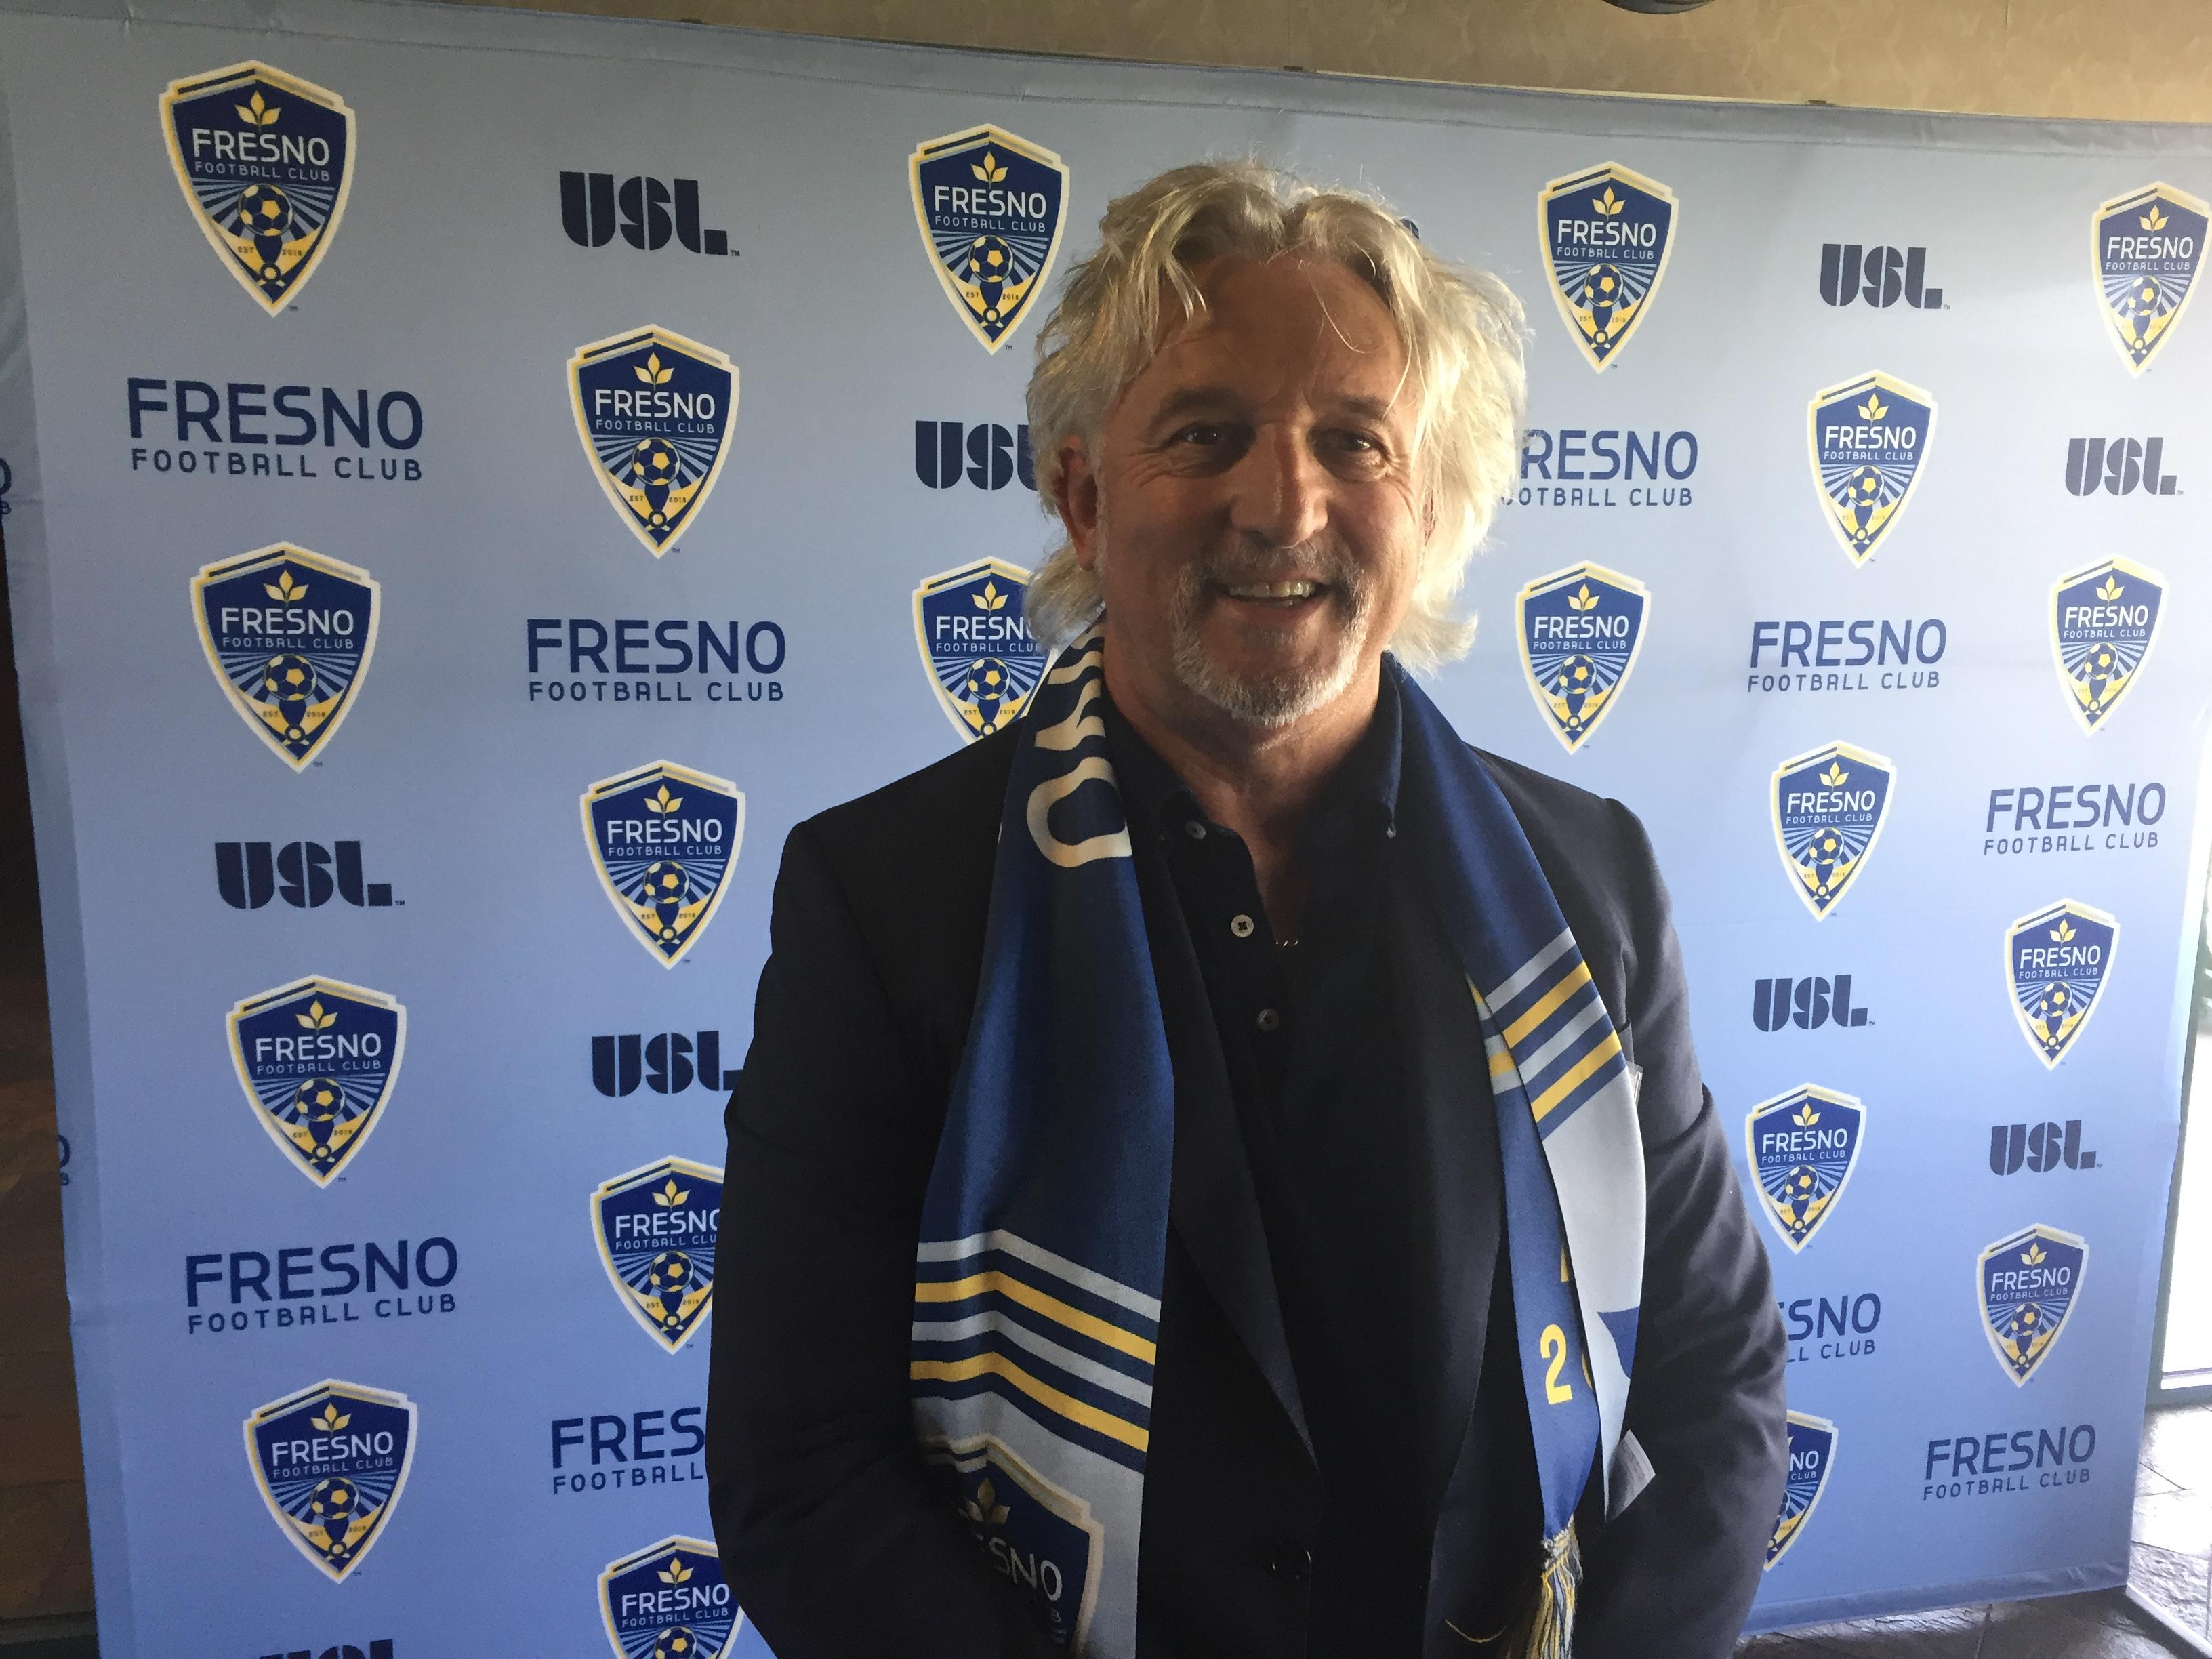 Fresno FC lead investor Ray Beshoff says there will be a mascot for the team eventually. He likes the idea of a fox.